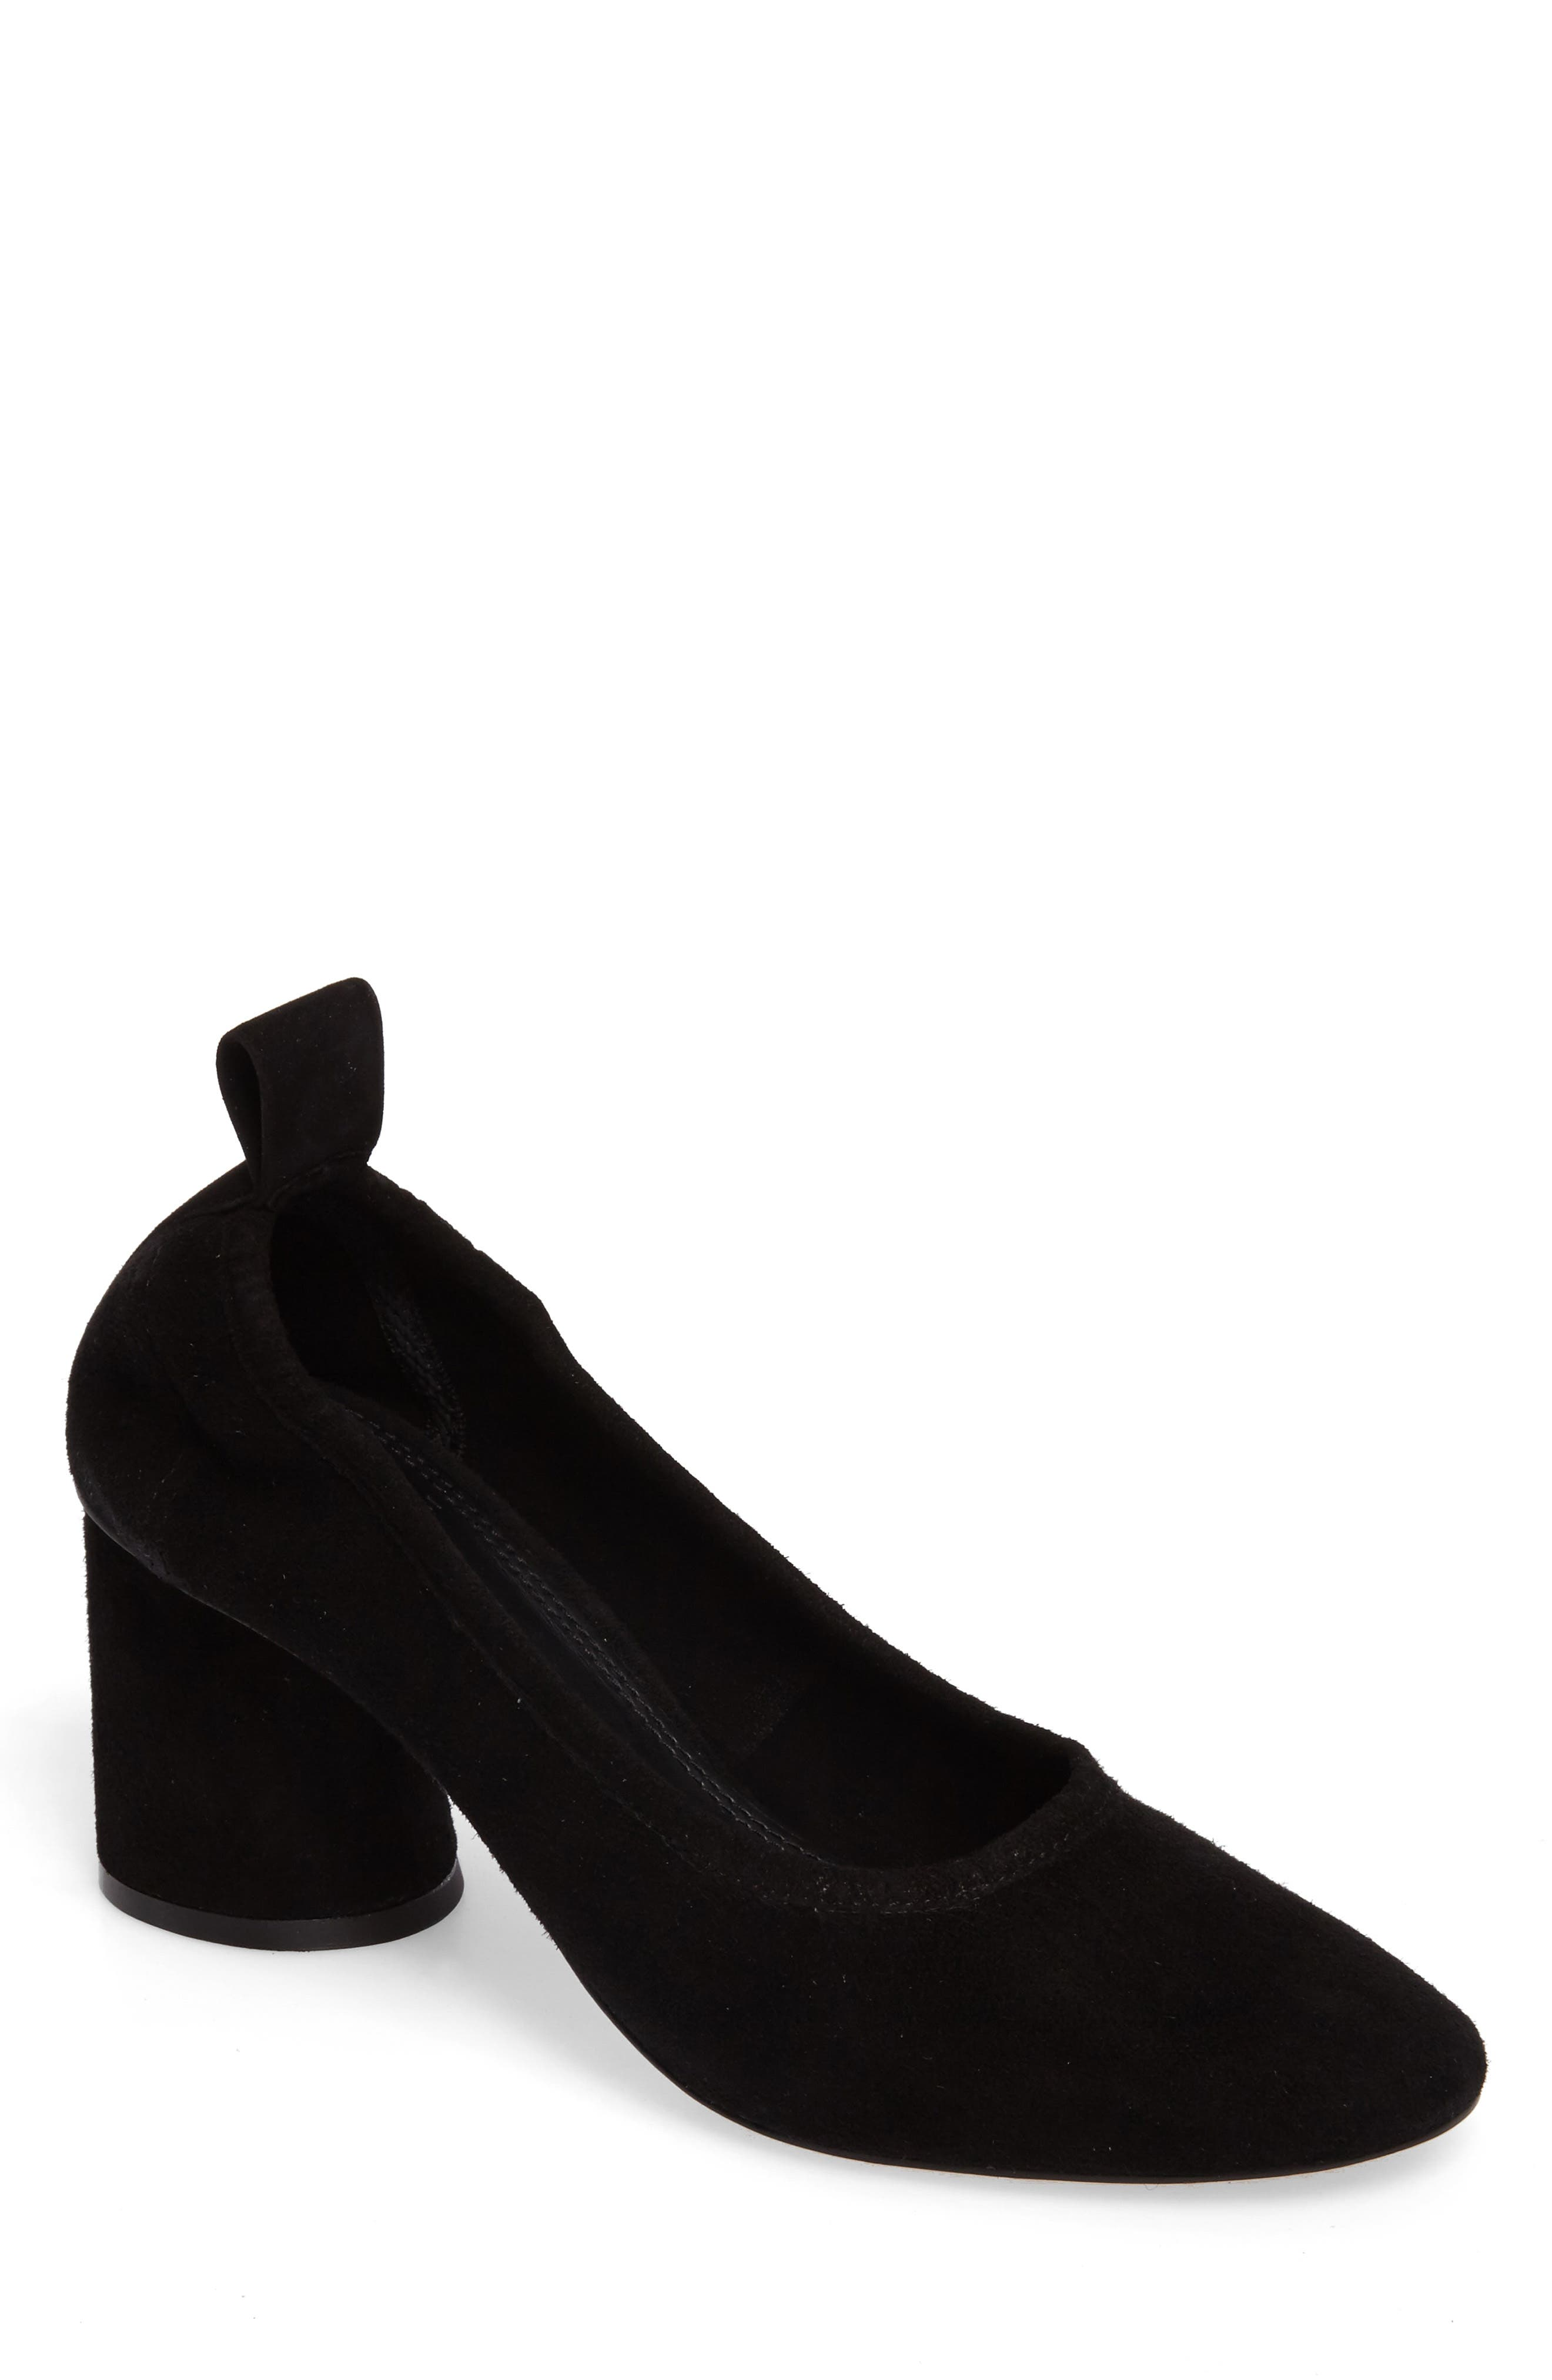 Therese Statement Heel Pump,                         Main,                         color, 001